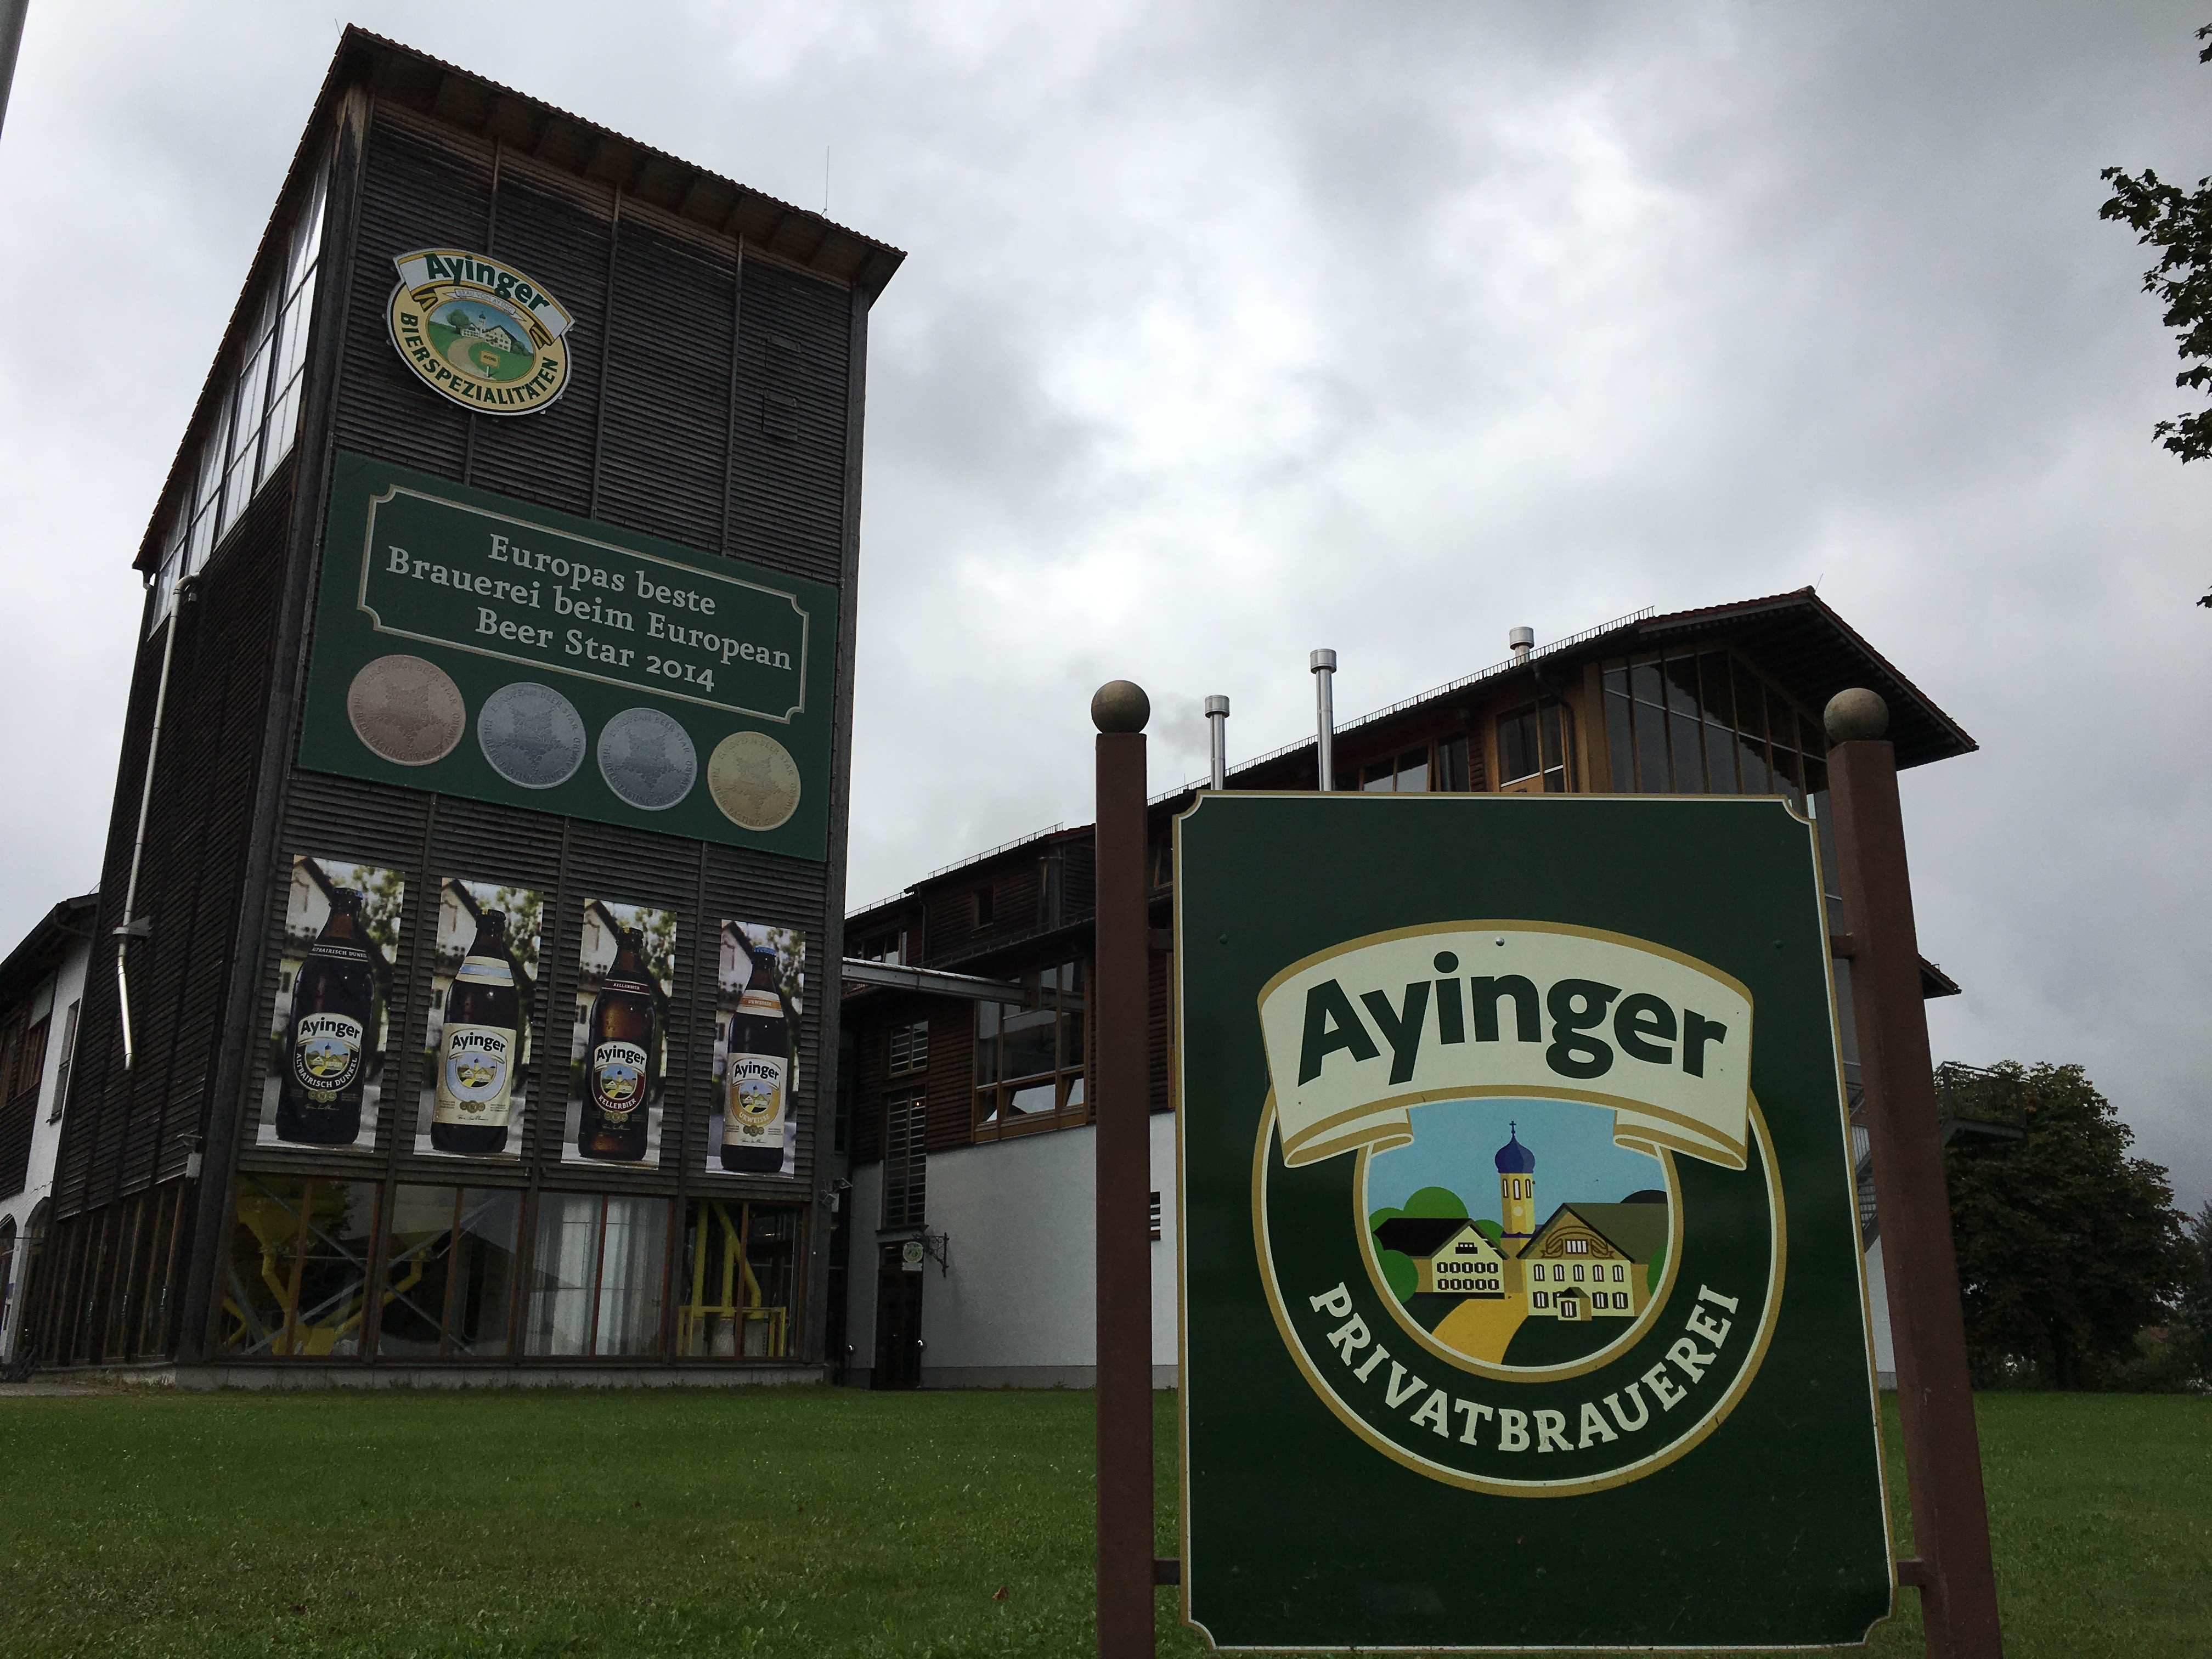 Welcome to Ayinger Privatbrauerei in Aying, Germany.